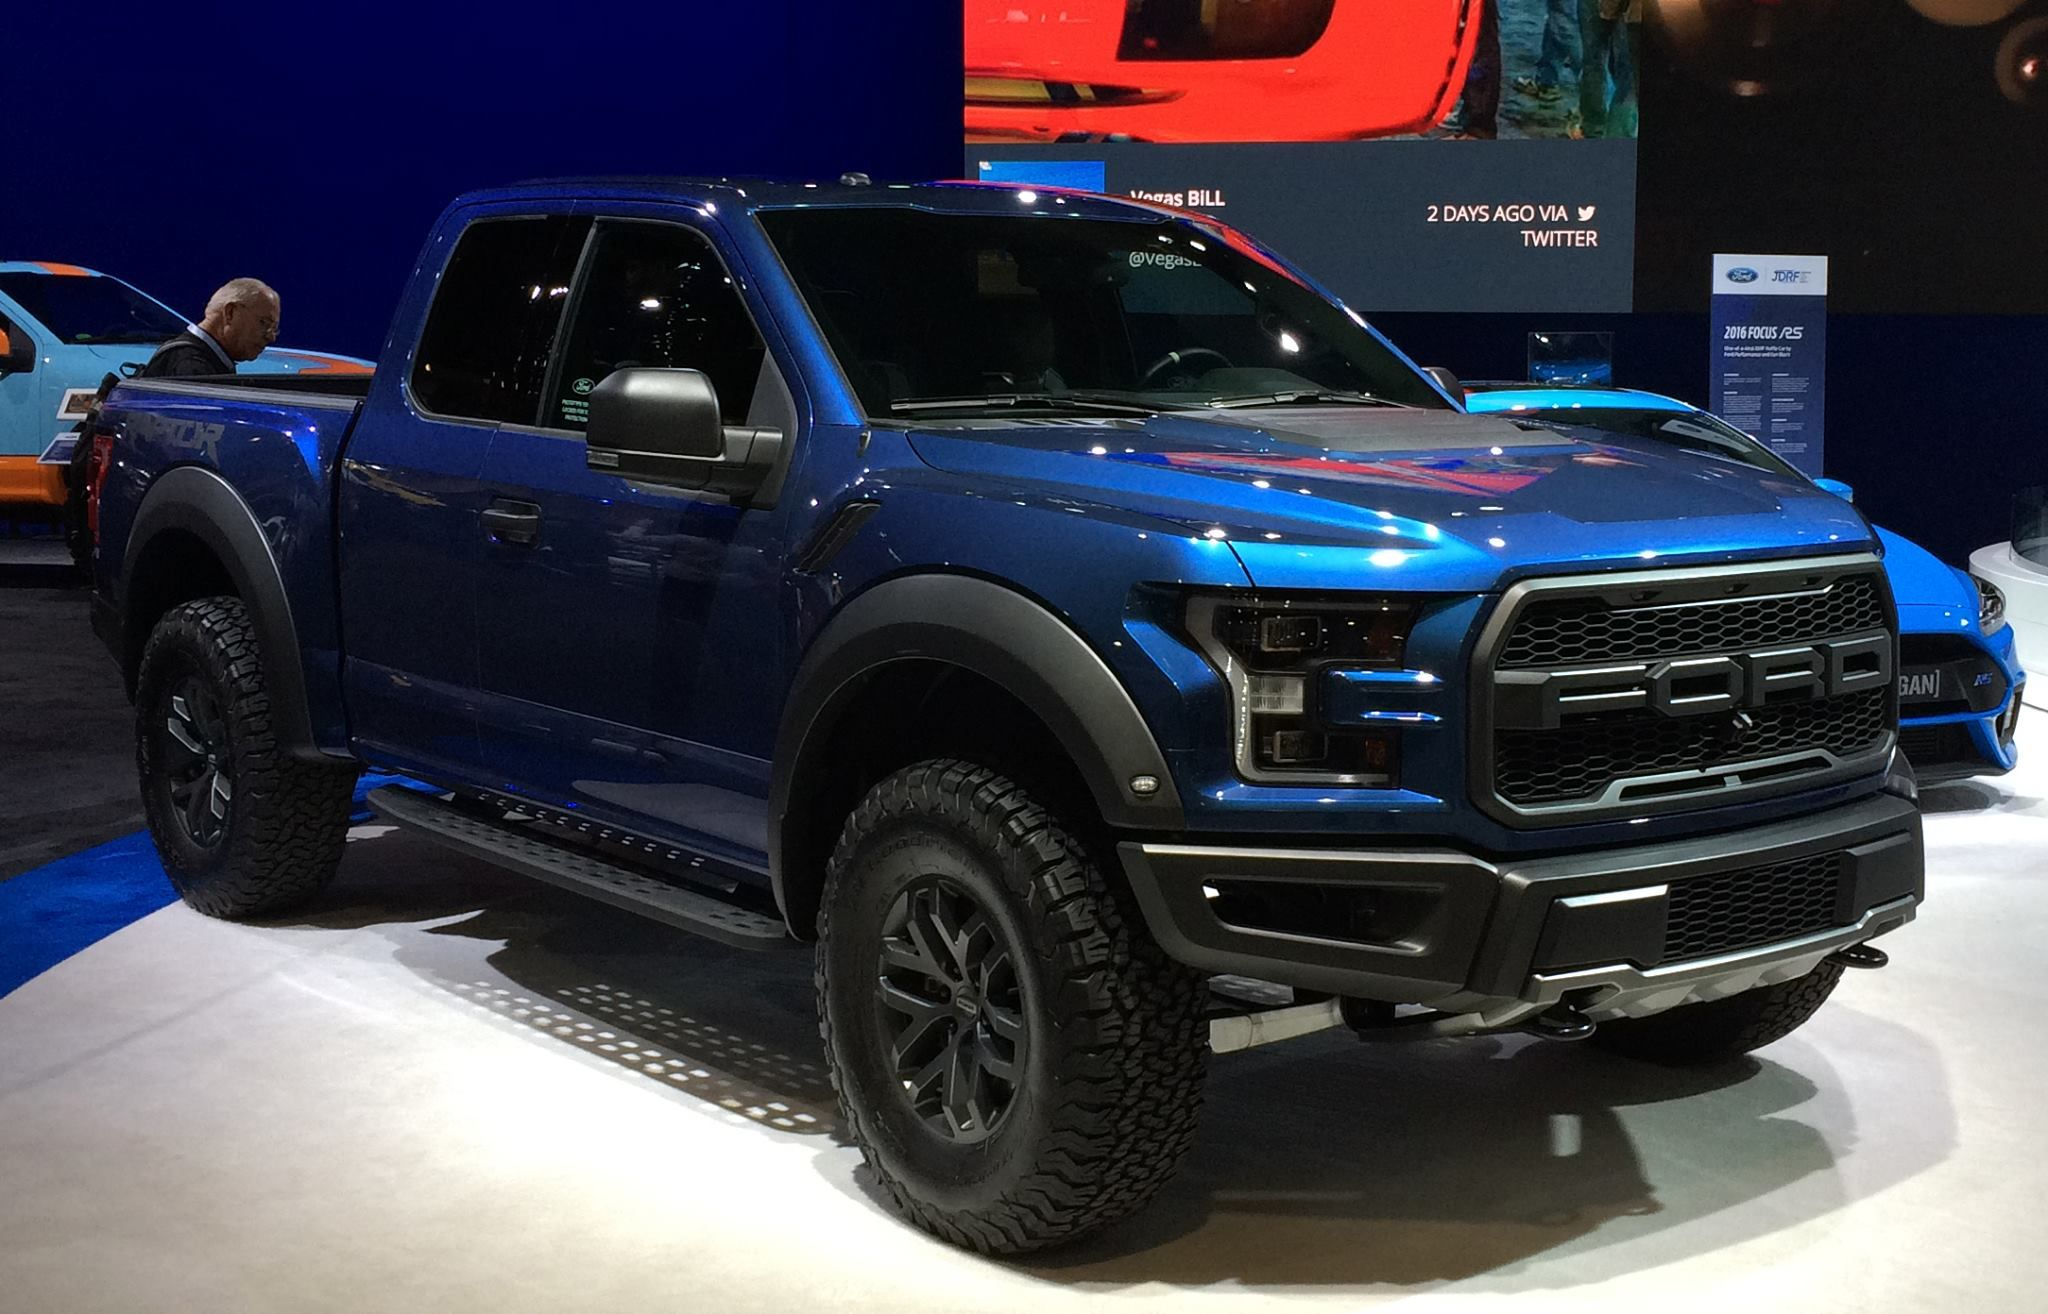 jacks amazing h cab batteries emergency with svt pickup parts body brake drive ford fq crew raptor wash additives price f wax equipped upgrade oem first strips supplies alcon